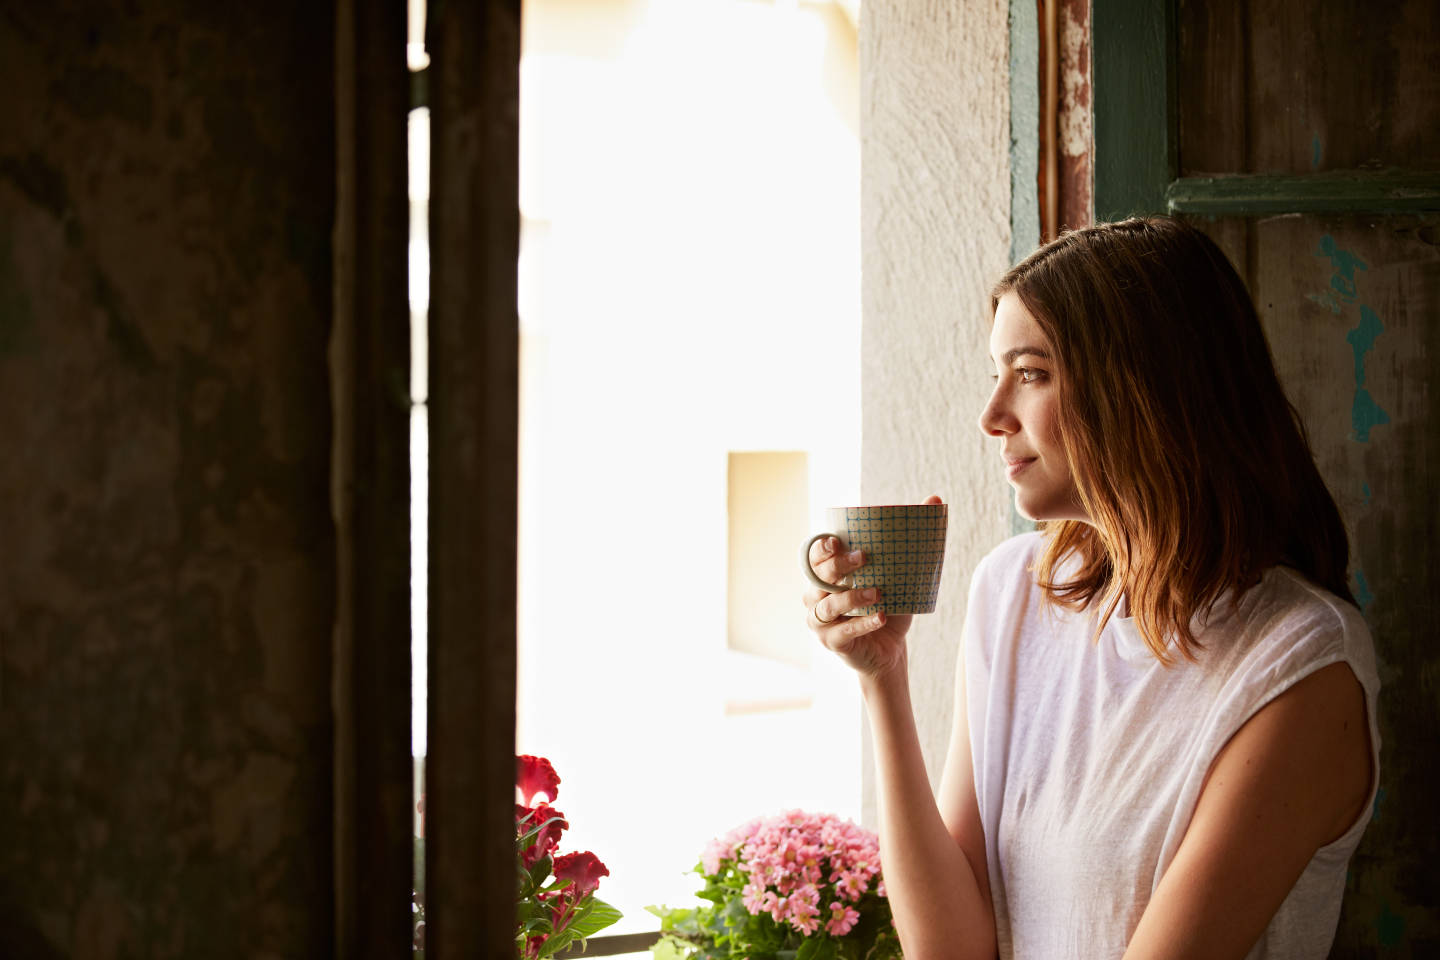 woman drinking coffee while looking out window